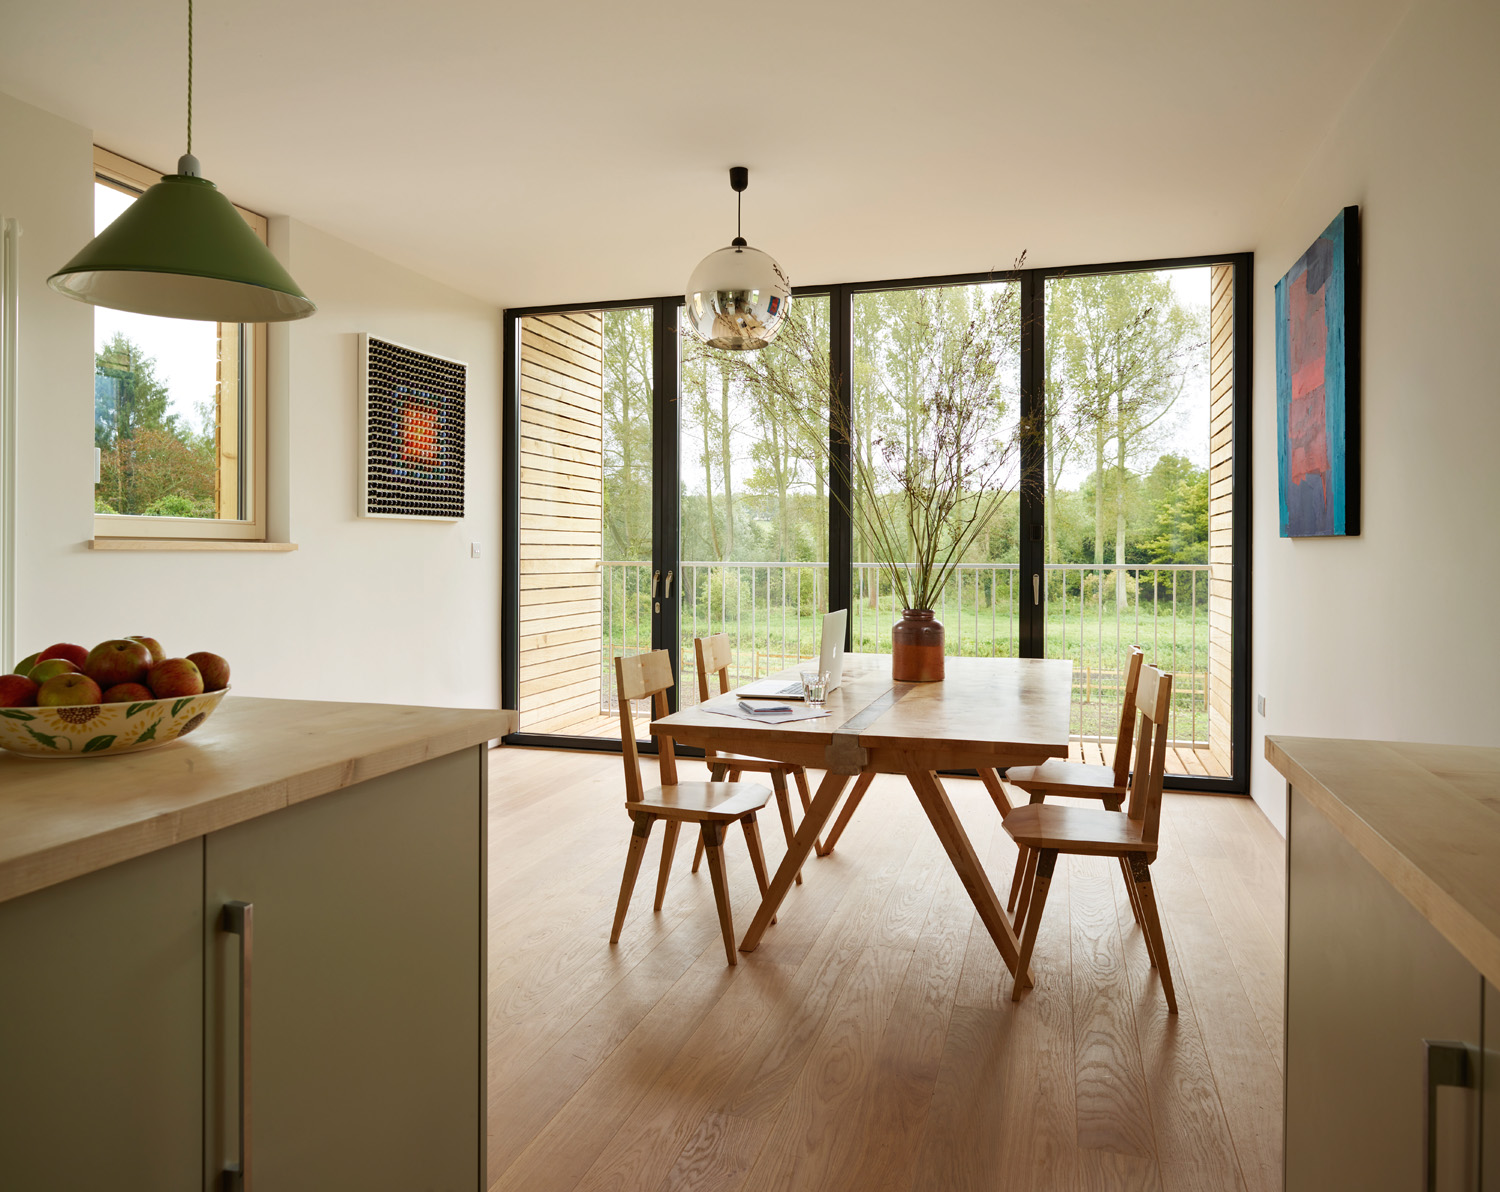 Interior design challenge eco home -  Grand Designs Uk Idyllic And Super Eco Home